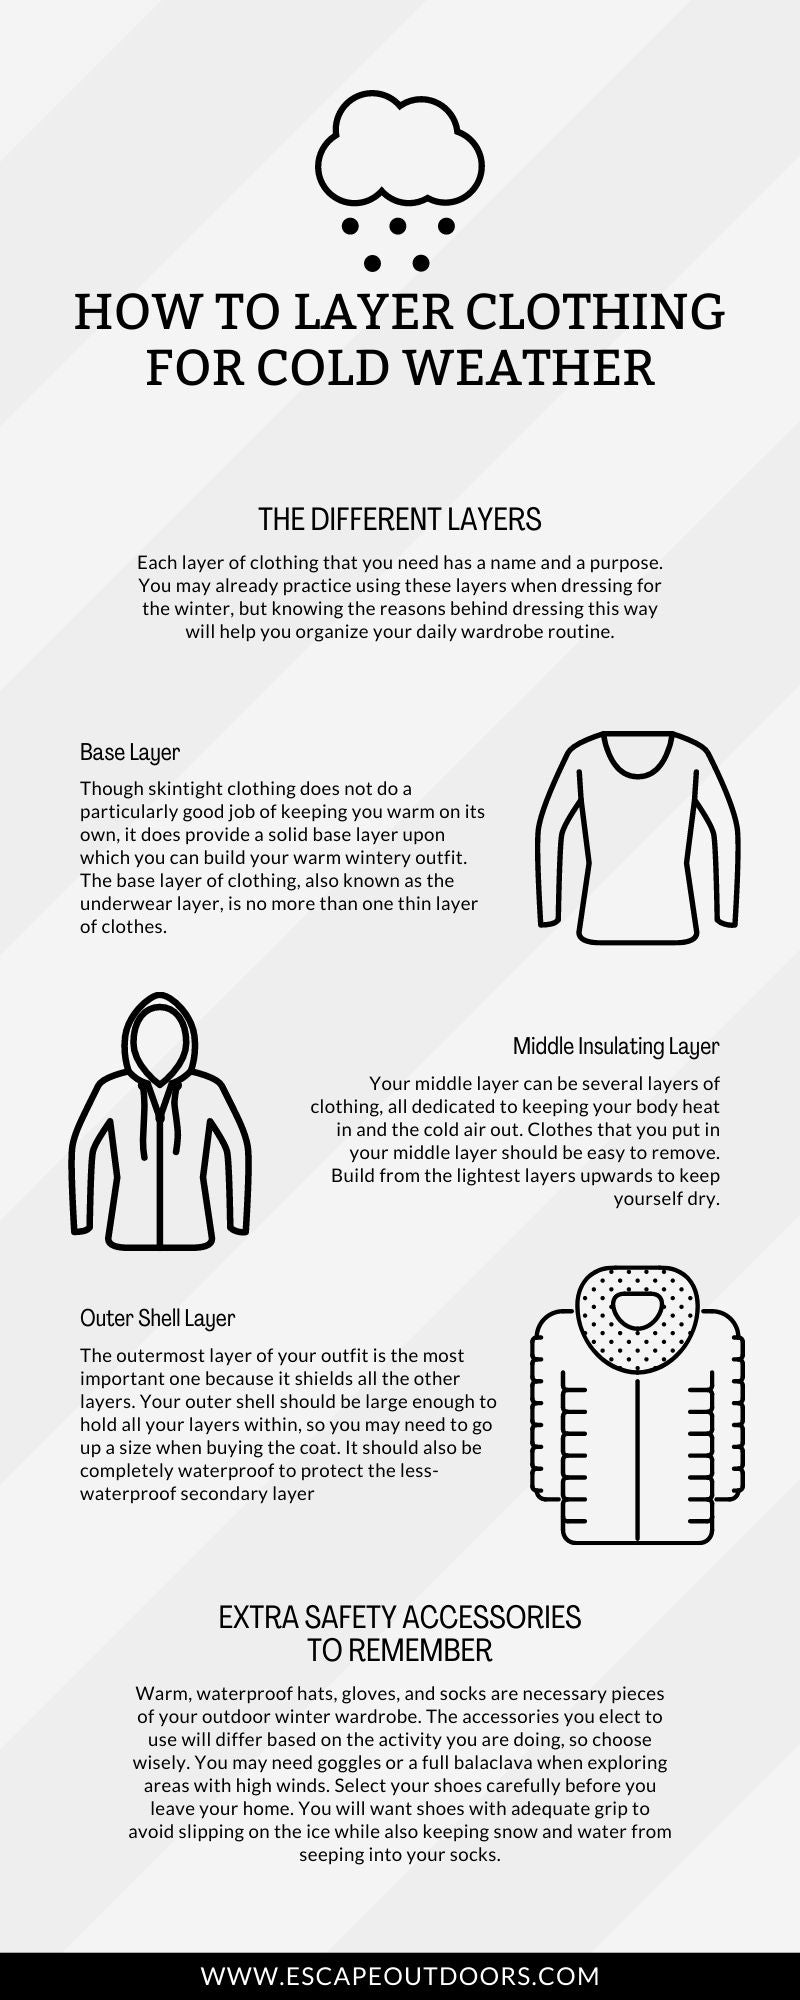 Clothing for Cold Weather